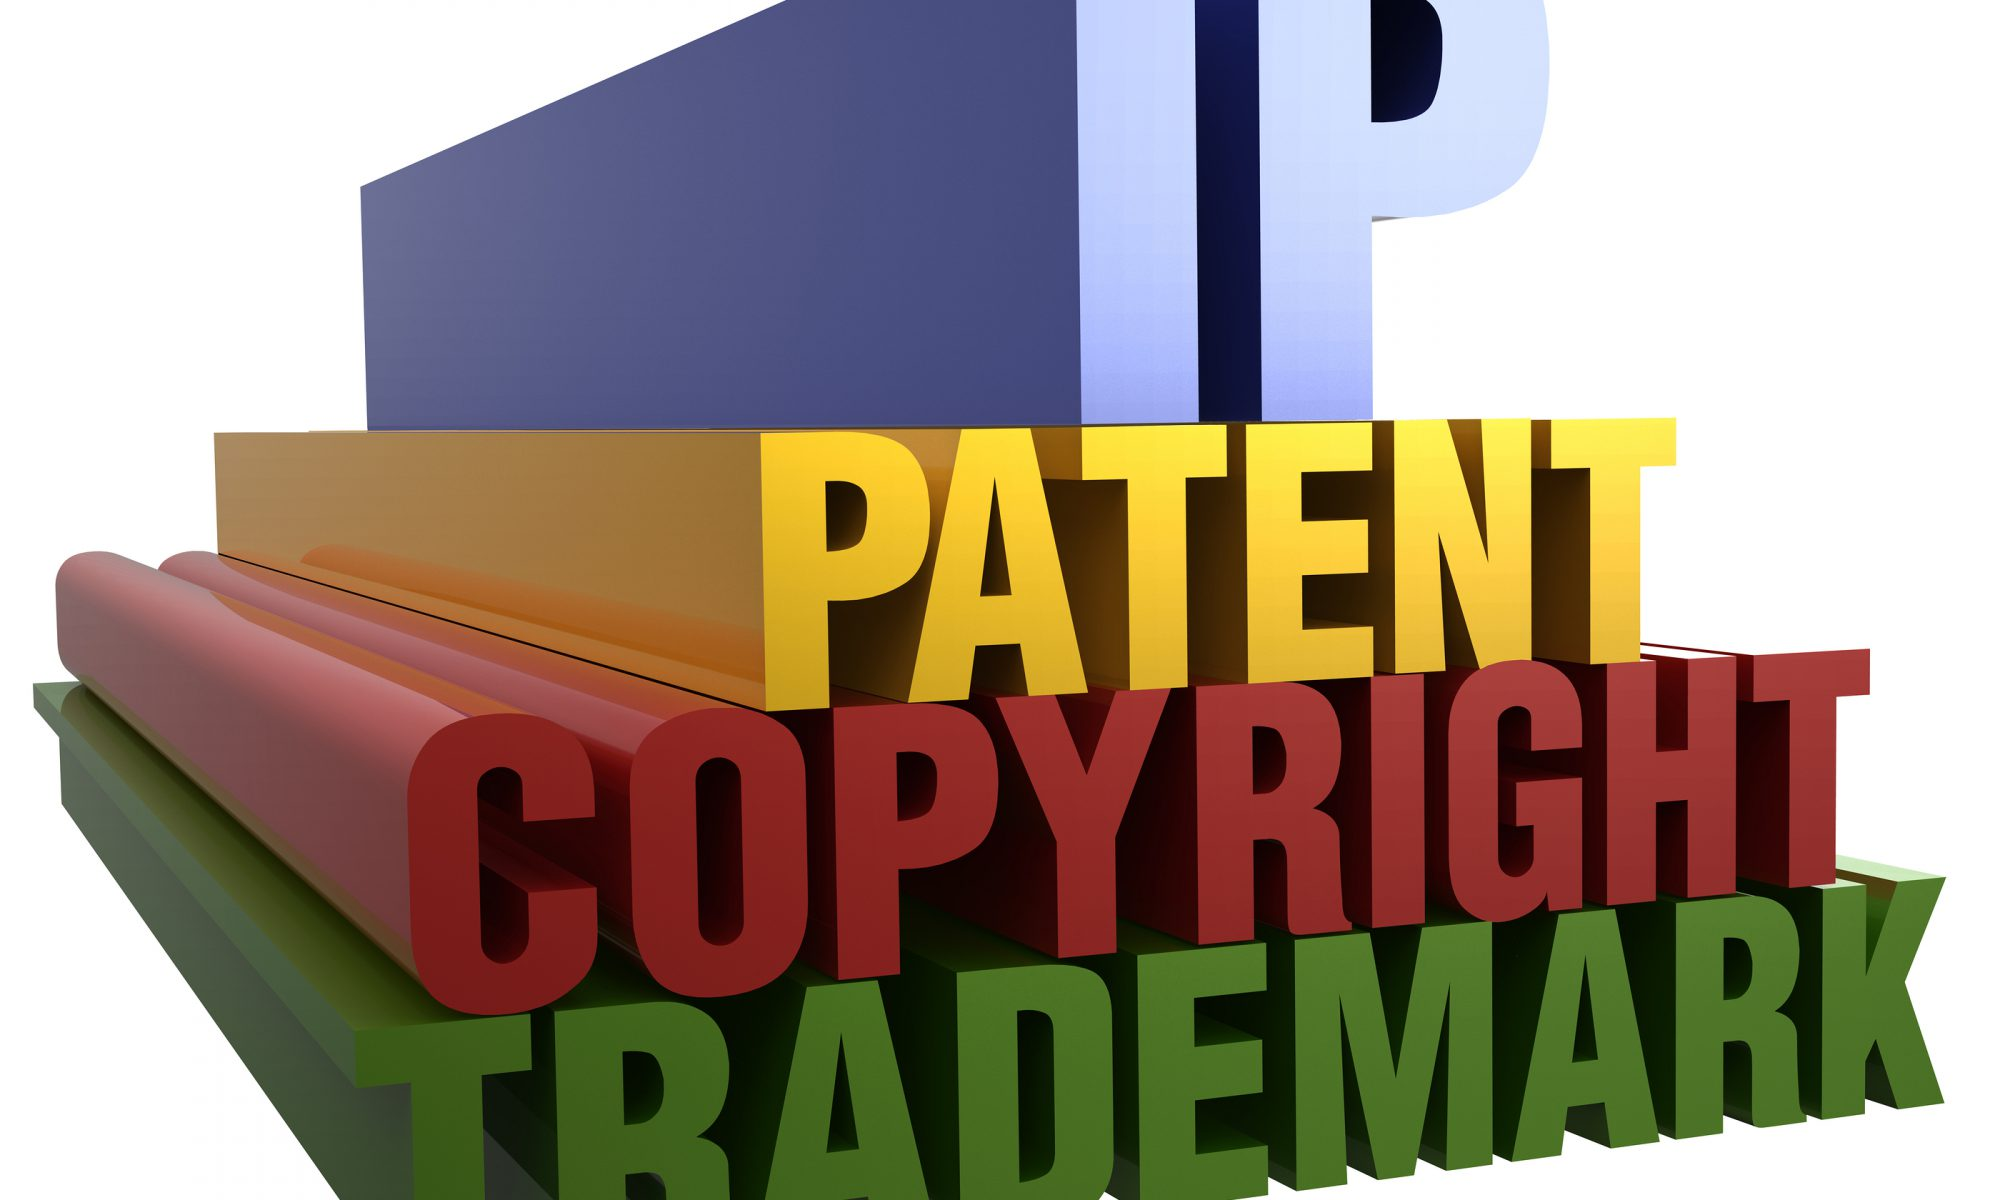 copyright trademarks patents and violations Home essays copyrights and patents copyrights and patents trademarks , patents, and violations including piracy essaycopyright, trademarks , patents, and.